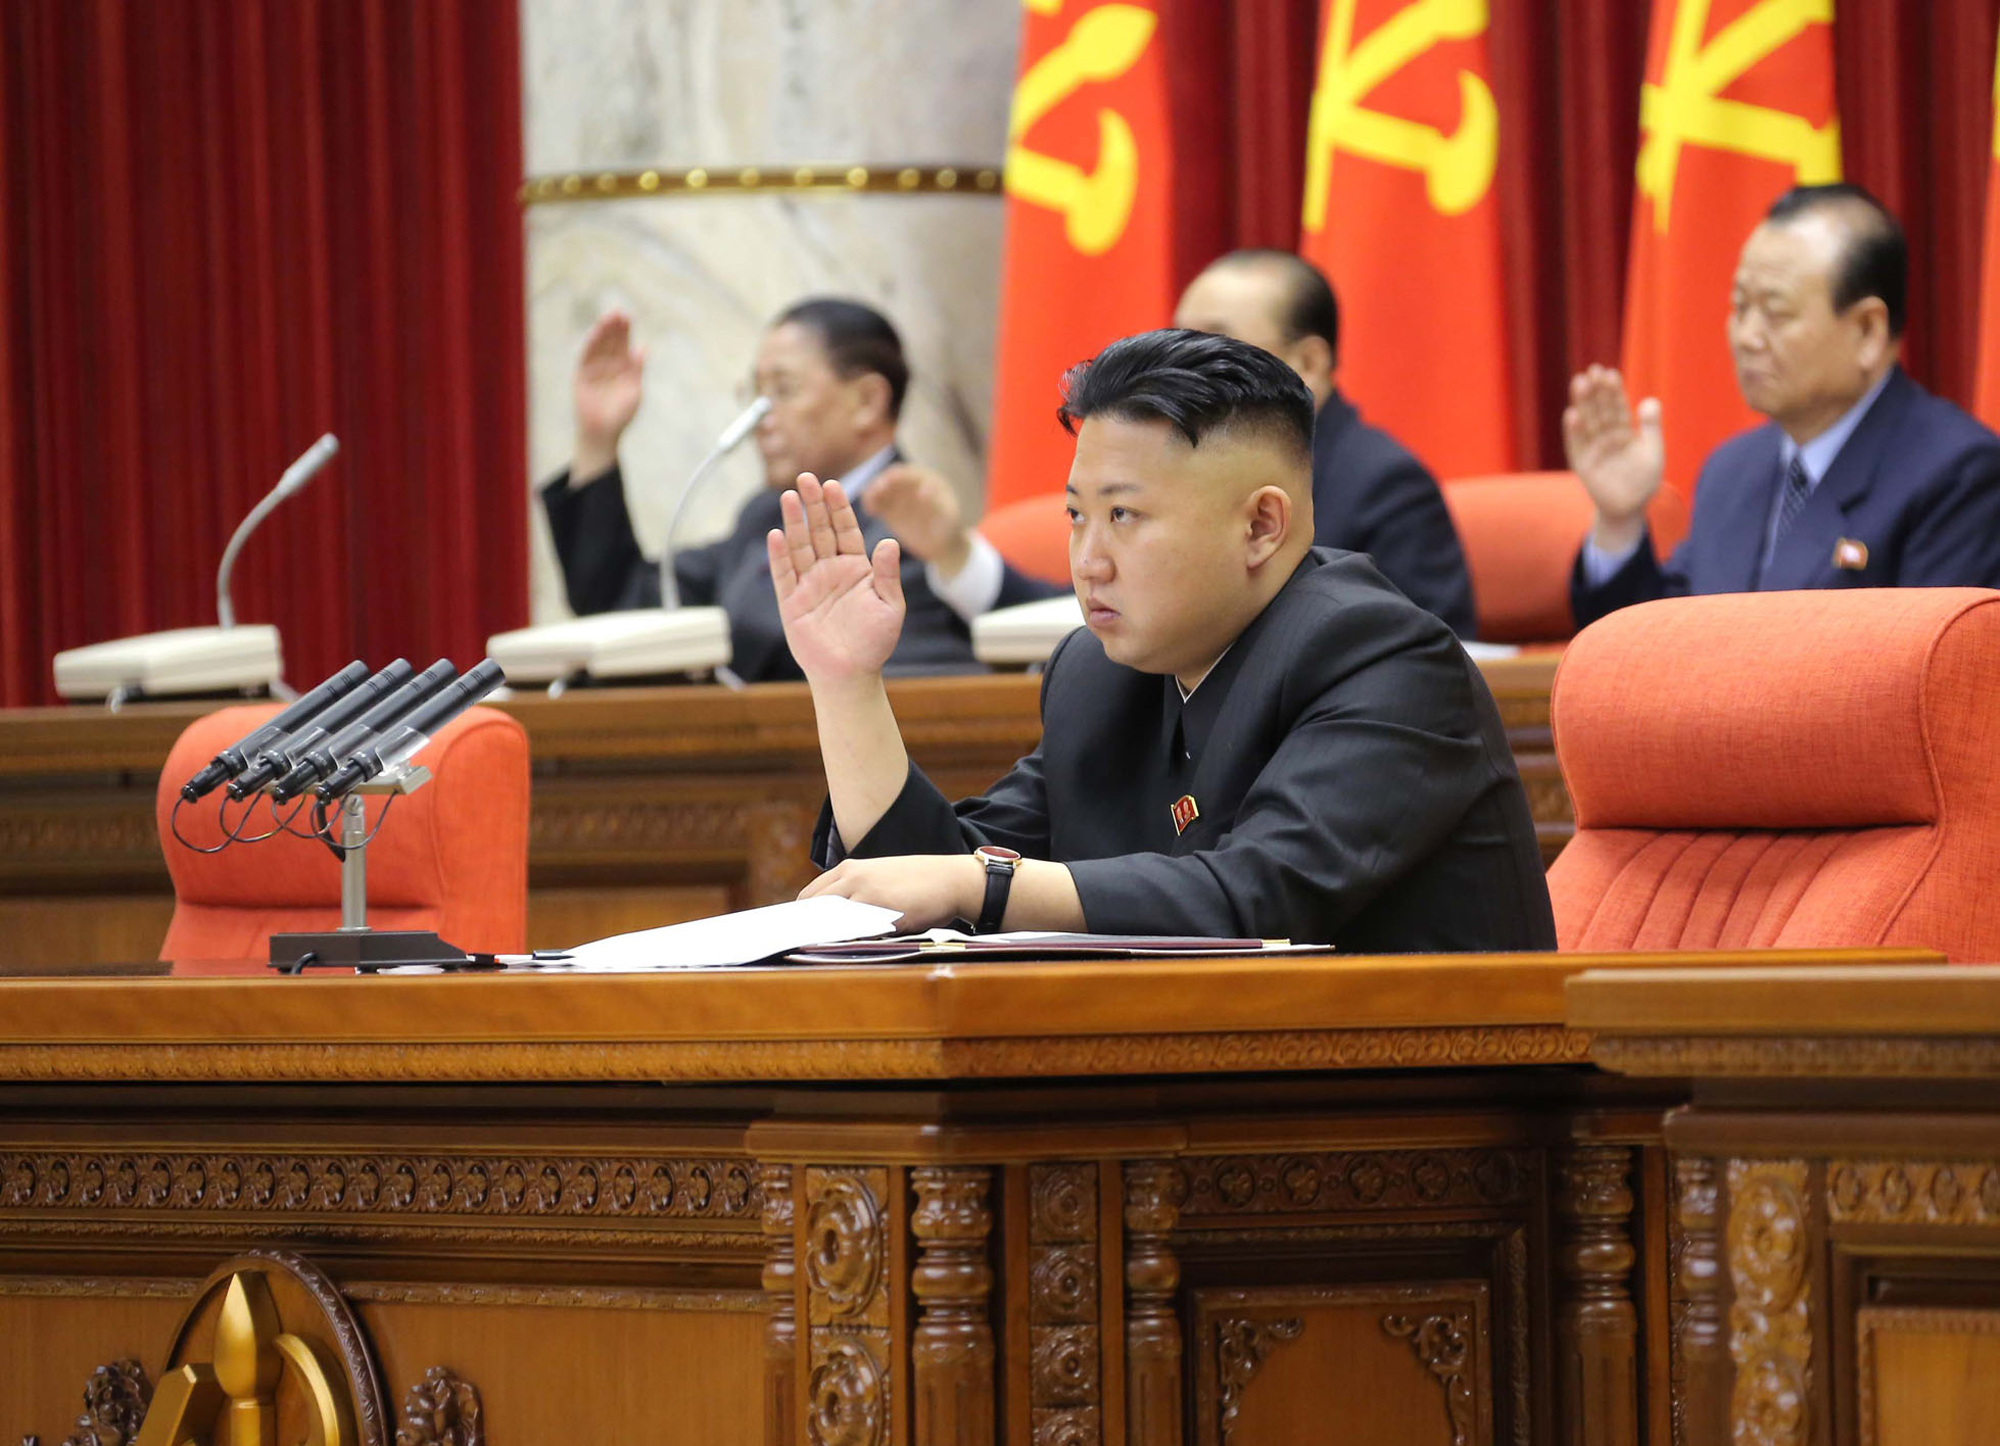 North Korean leader Kim Jong Un raises his hand with other officials to adopt a statement during a plenary meeting of the Central Committee of the ruling Workers' Party in Pyongyang, N.K. (AP/KCNA via KNS)